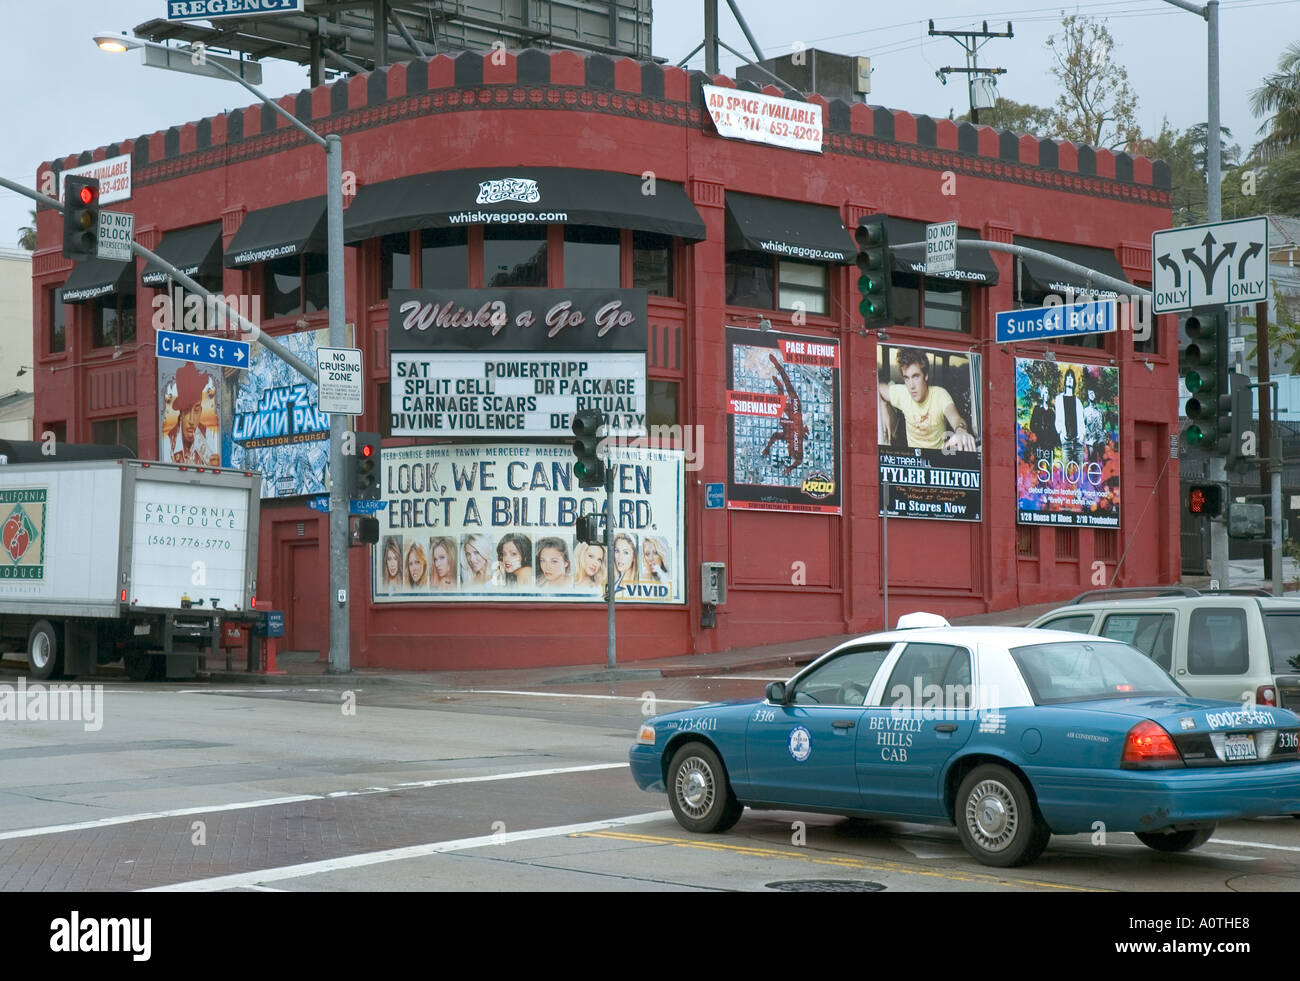 beverly hills casting stock photos beverly hills casting stock the whiskey a go go music venue on sunset boulevard in west hollywood stock image